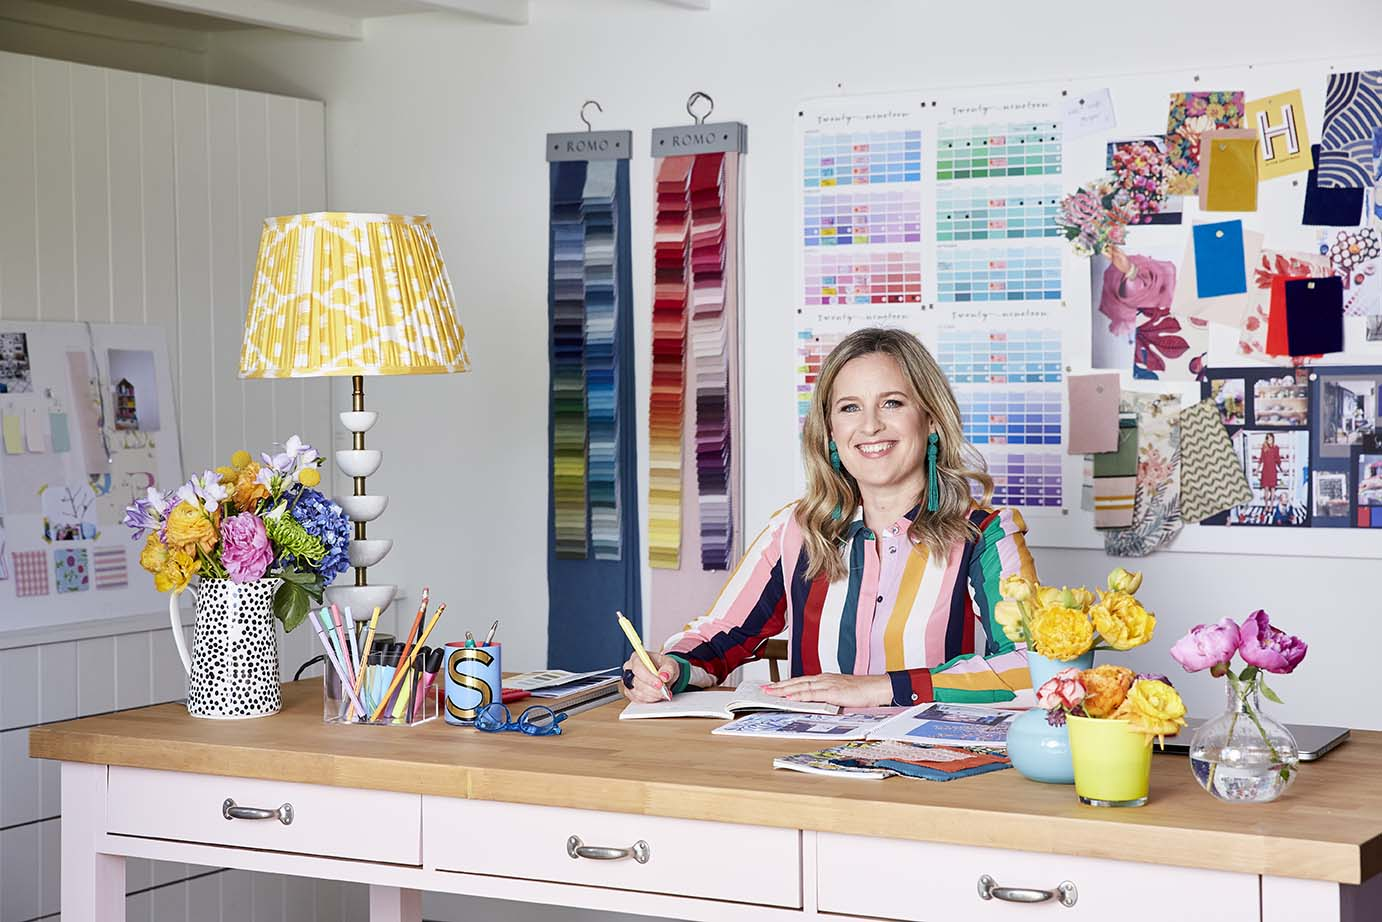 be your own interior designer interior design online course by Sophie Robinson shows you the creative deisgn process